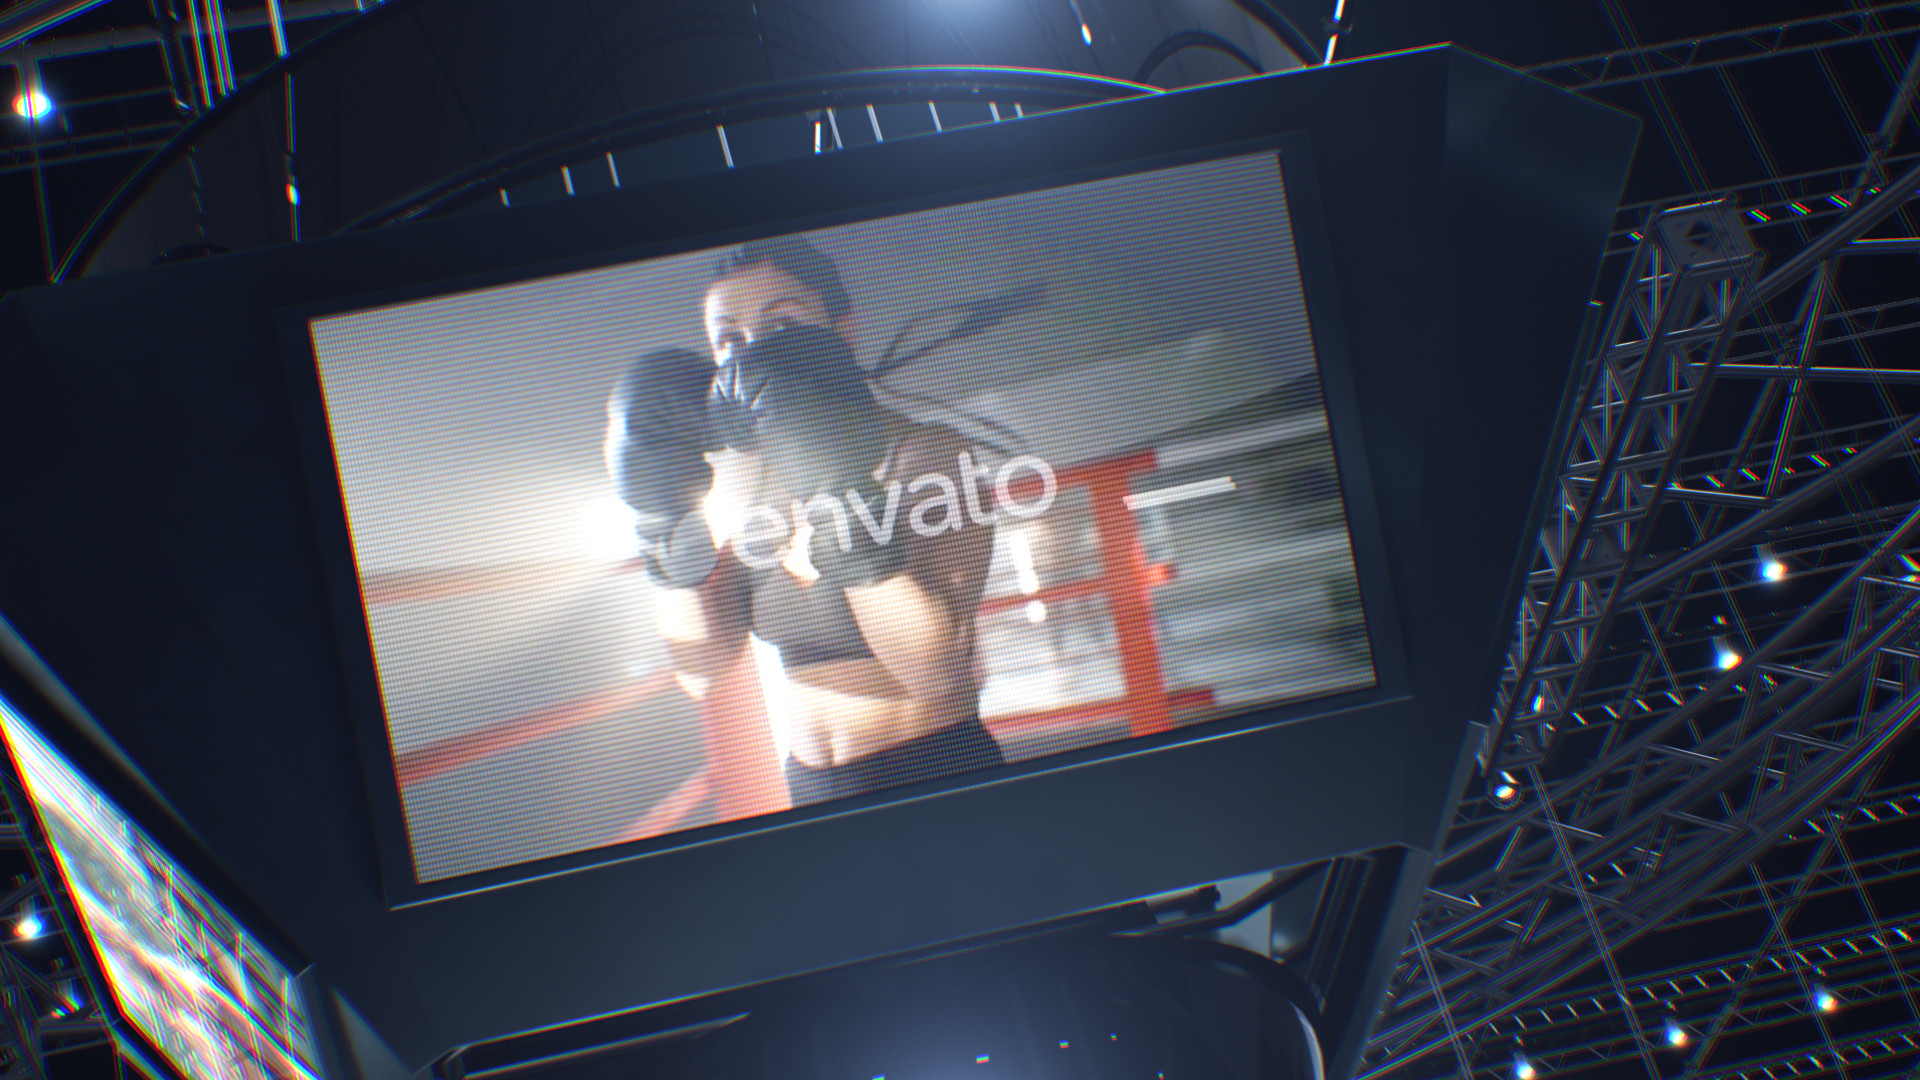 Boxing Ring Arena with Jumbotron - 5